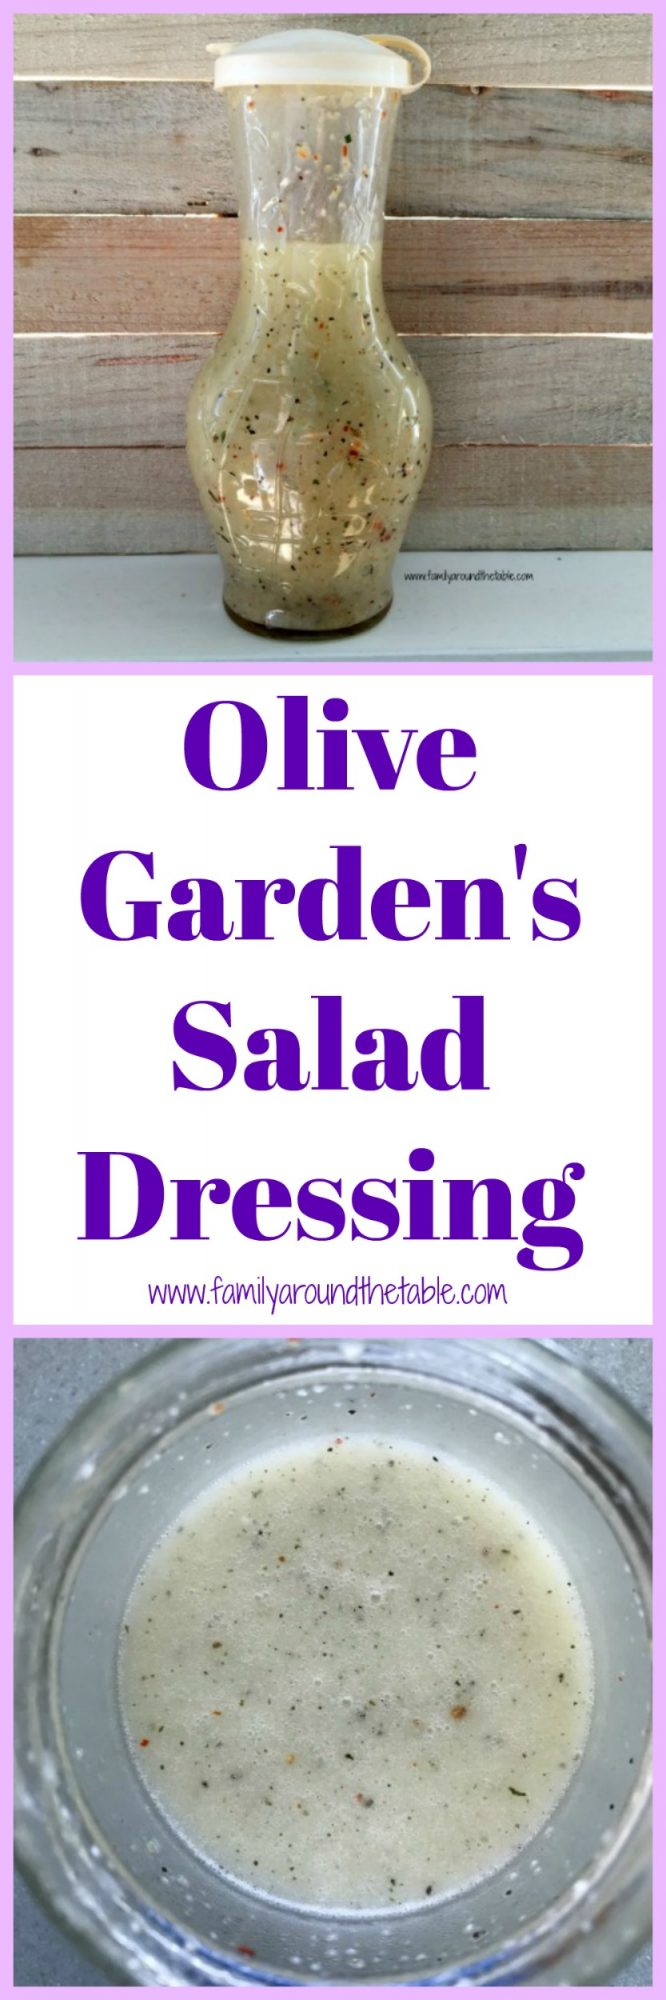 Homemade salad dressing like the Olive Garden Salad Dressing, is so easy to make and more delicious than store bought.